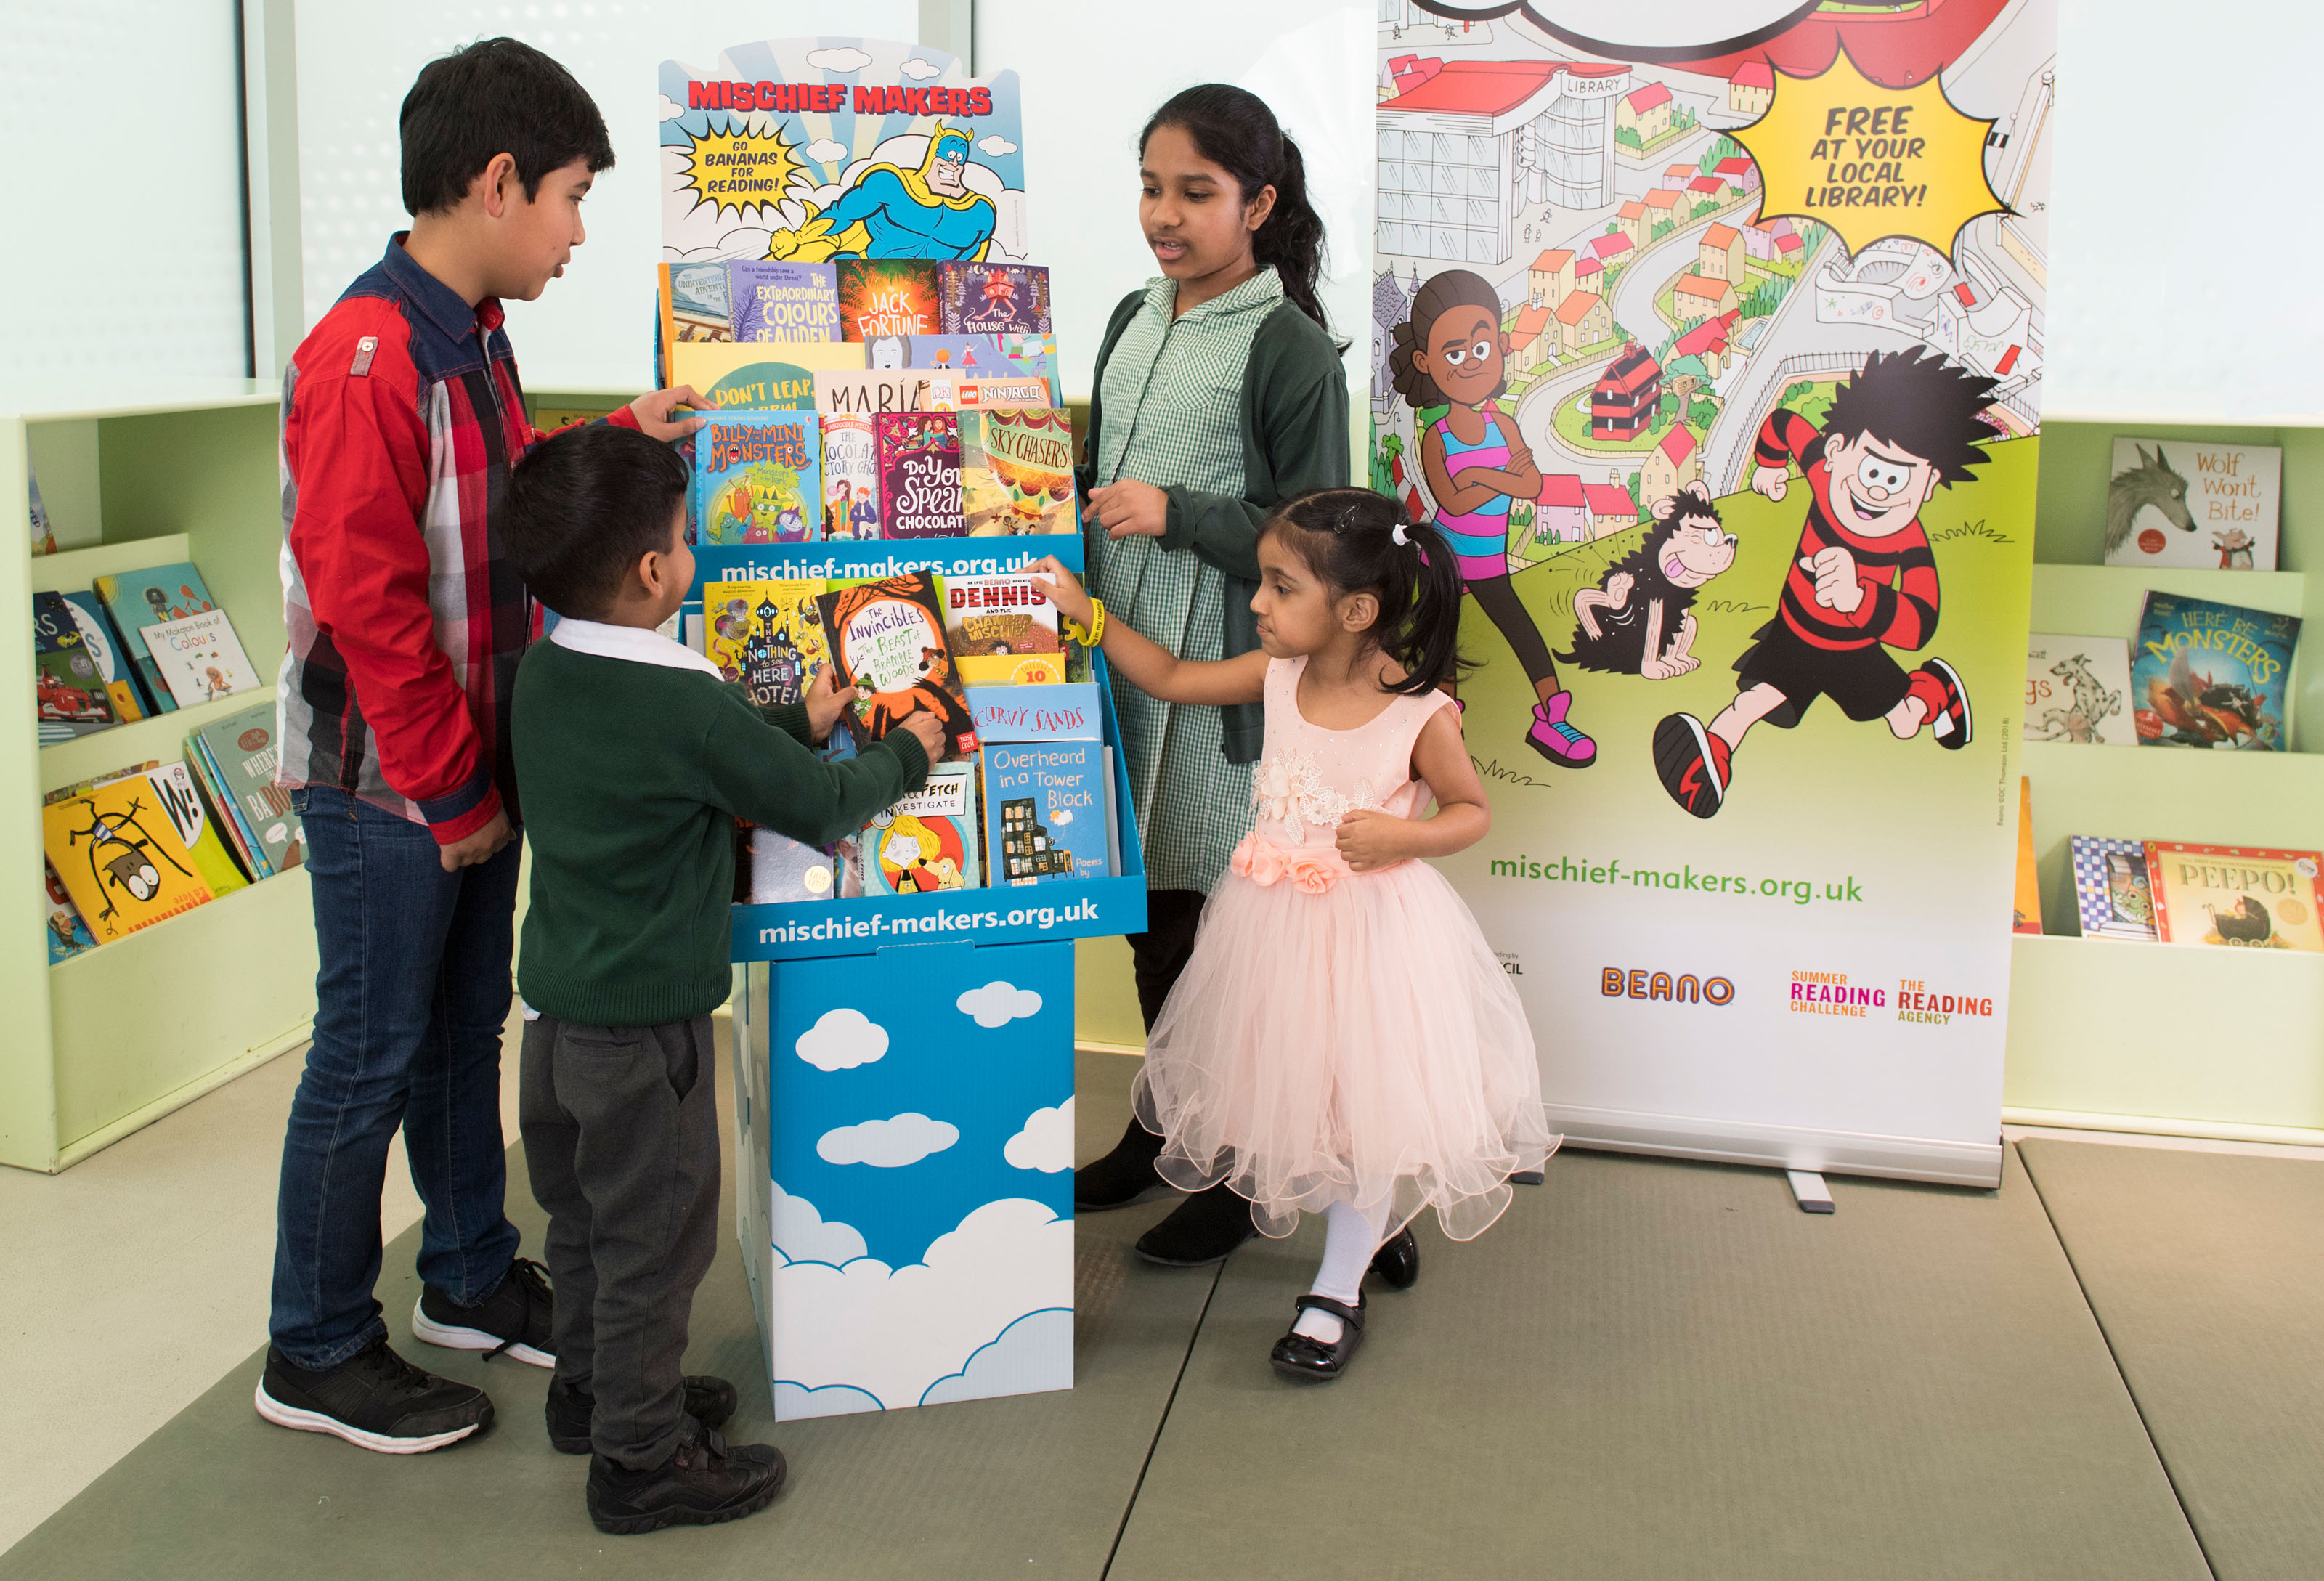 Photos © Dale Cherry for The Reading Agency, with thanks to Idea Store Watney Market